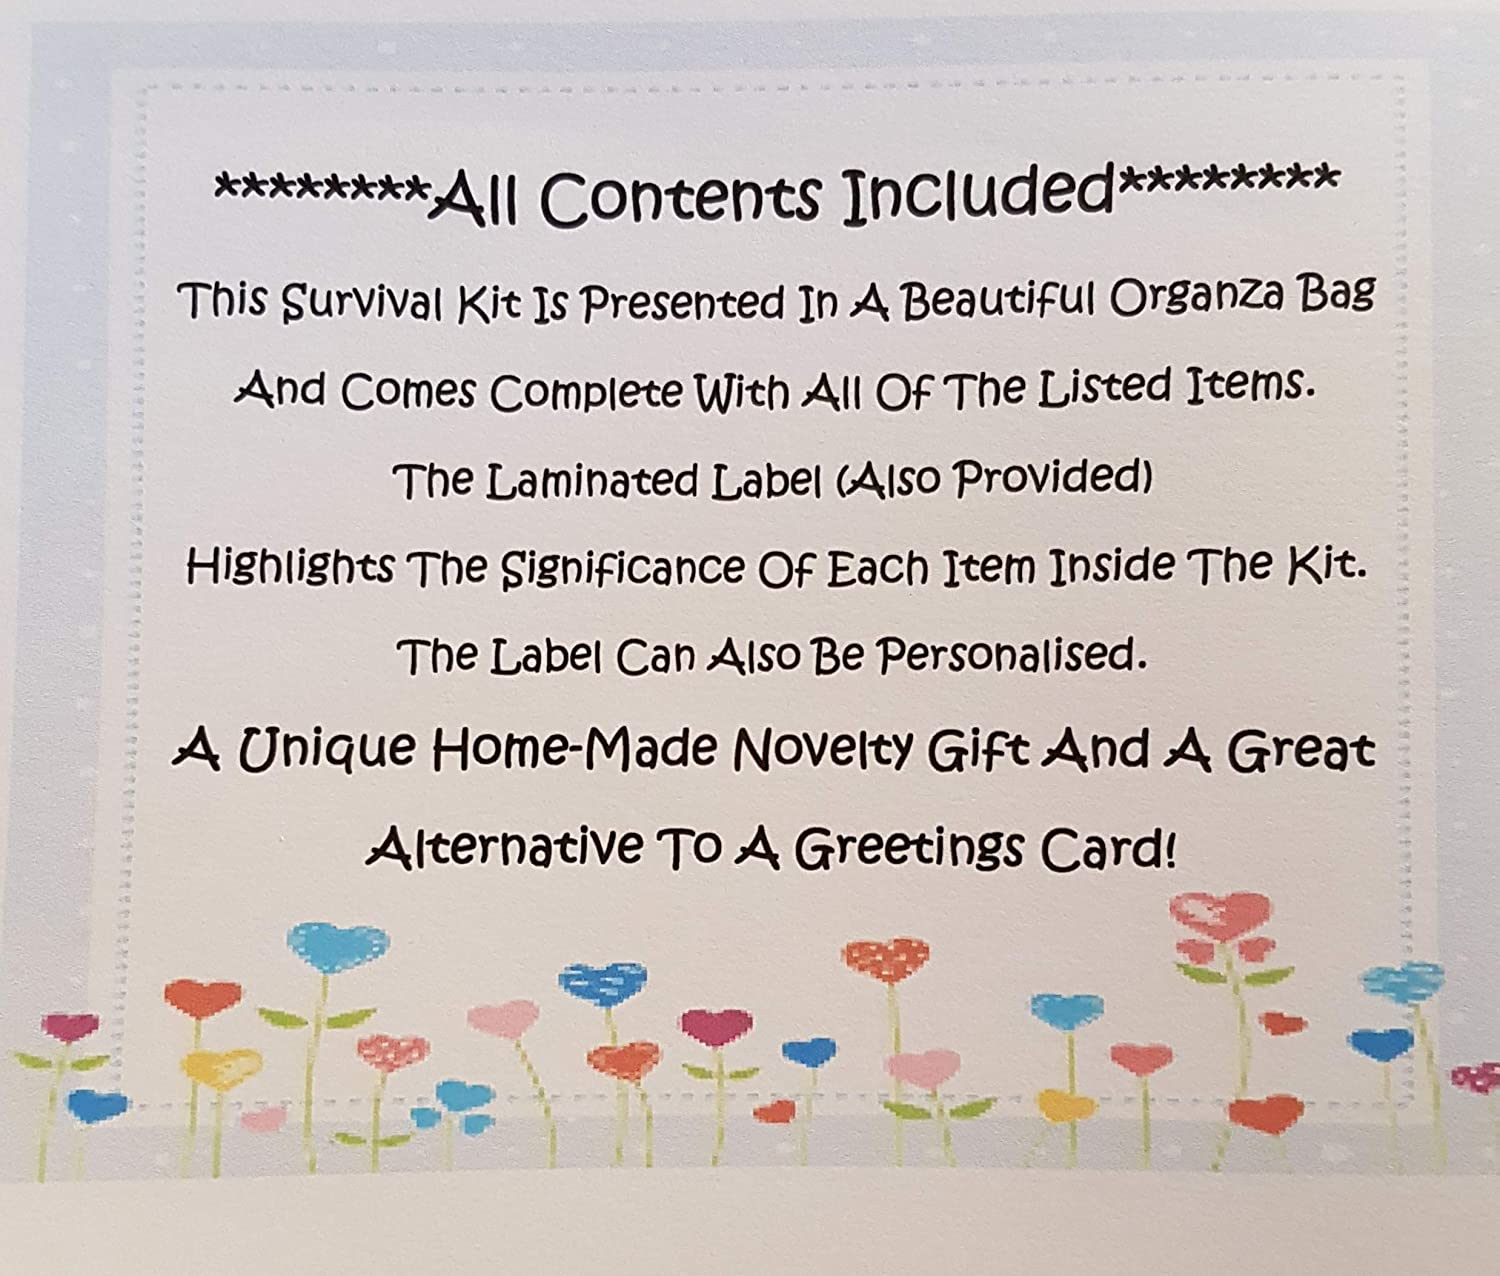 Dads Survival Kit NEW The Perfect Greetings Card Alternative!